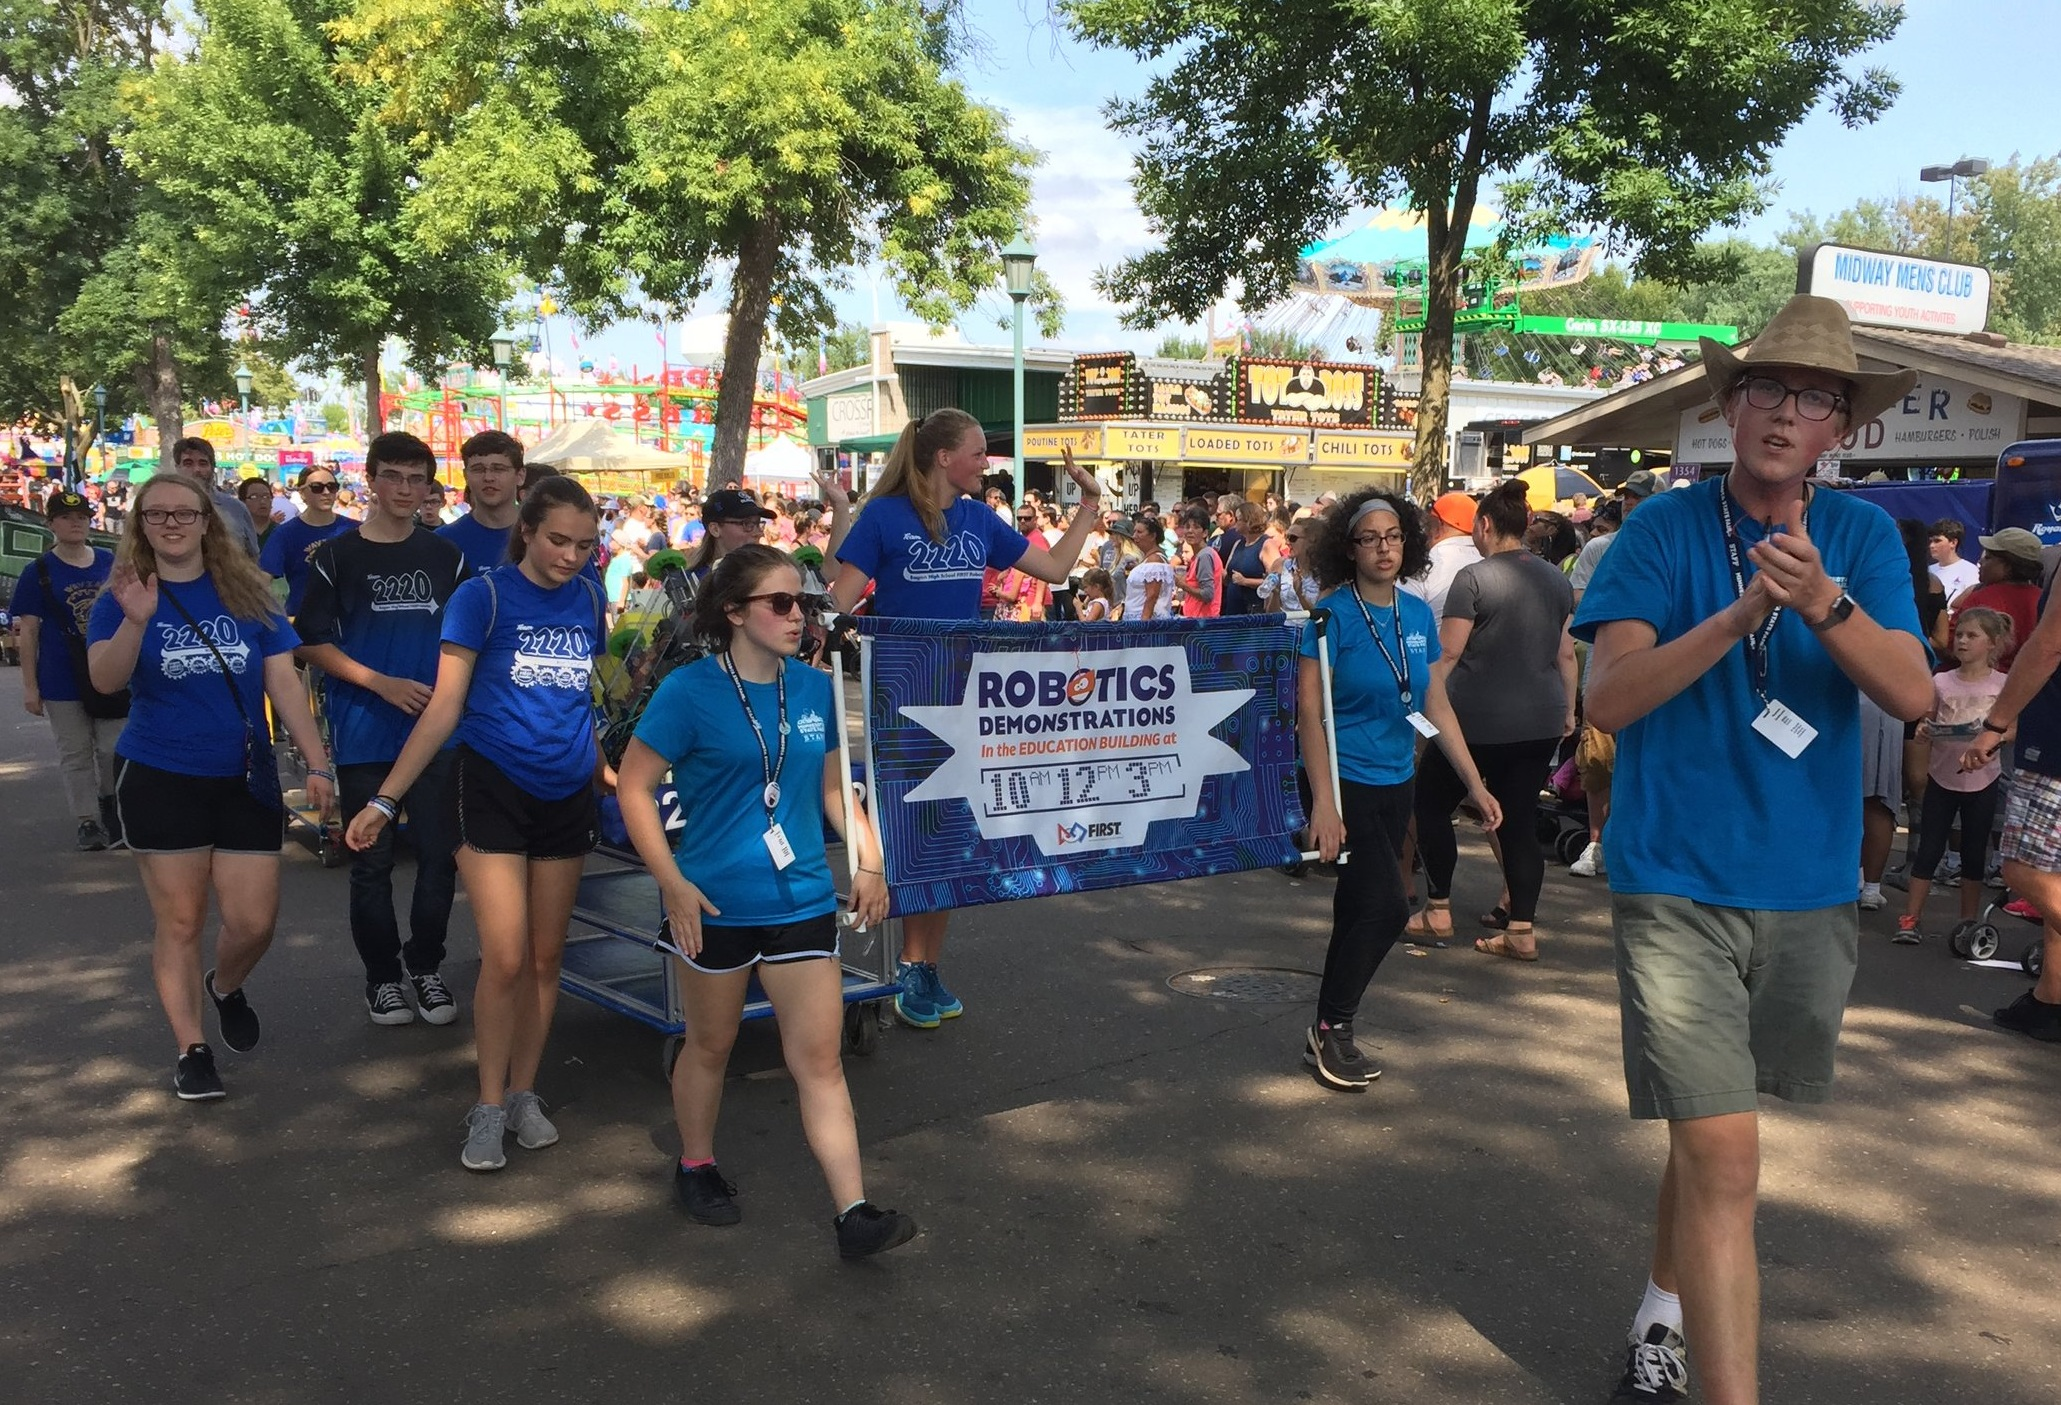 Team 2220 members spreading the message of first at the minnesota state fair.